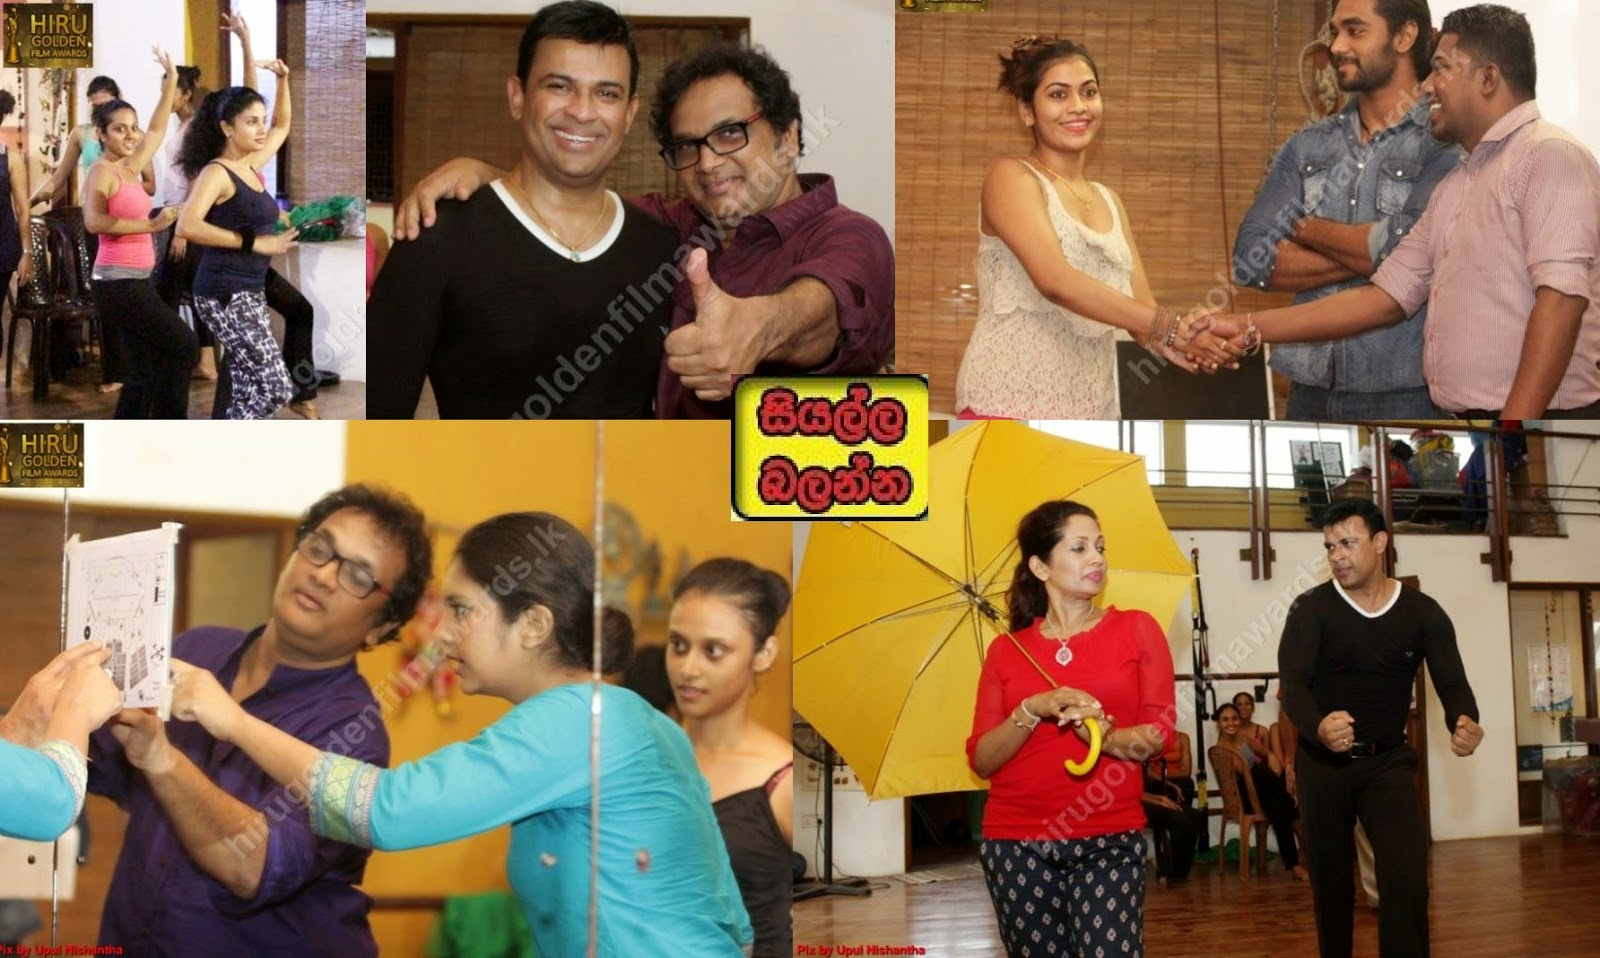 http://picture.gossiplankahotnews.com/2014/10/hiru-golden-film-awards-rehearsal.html